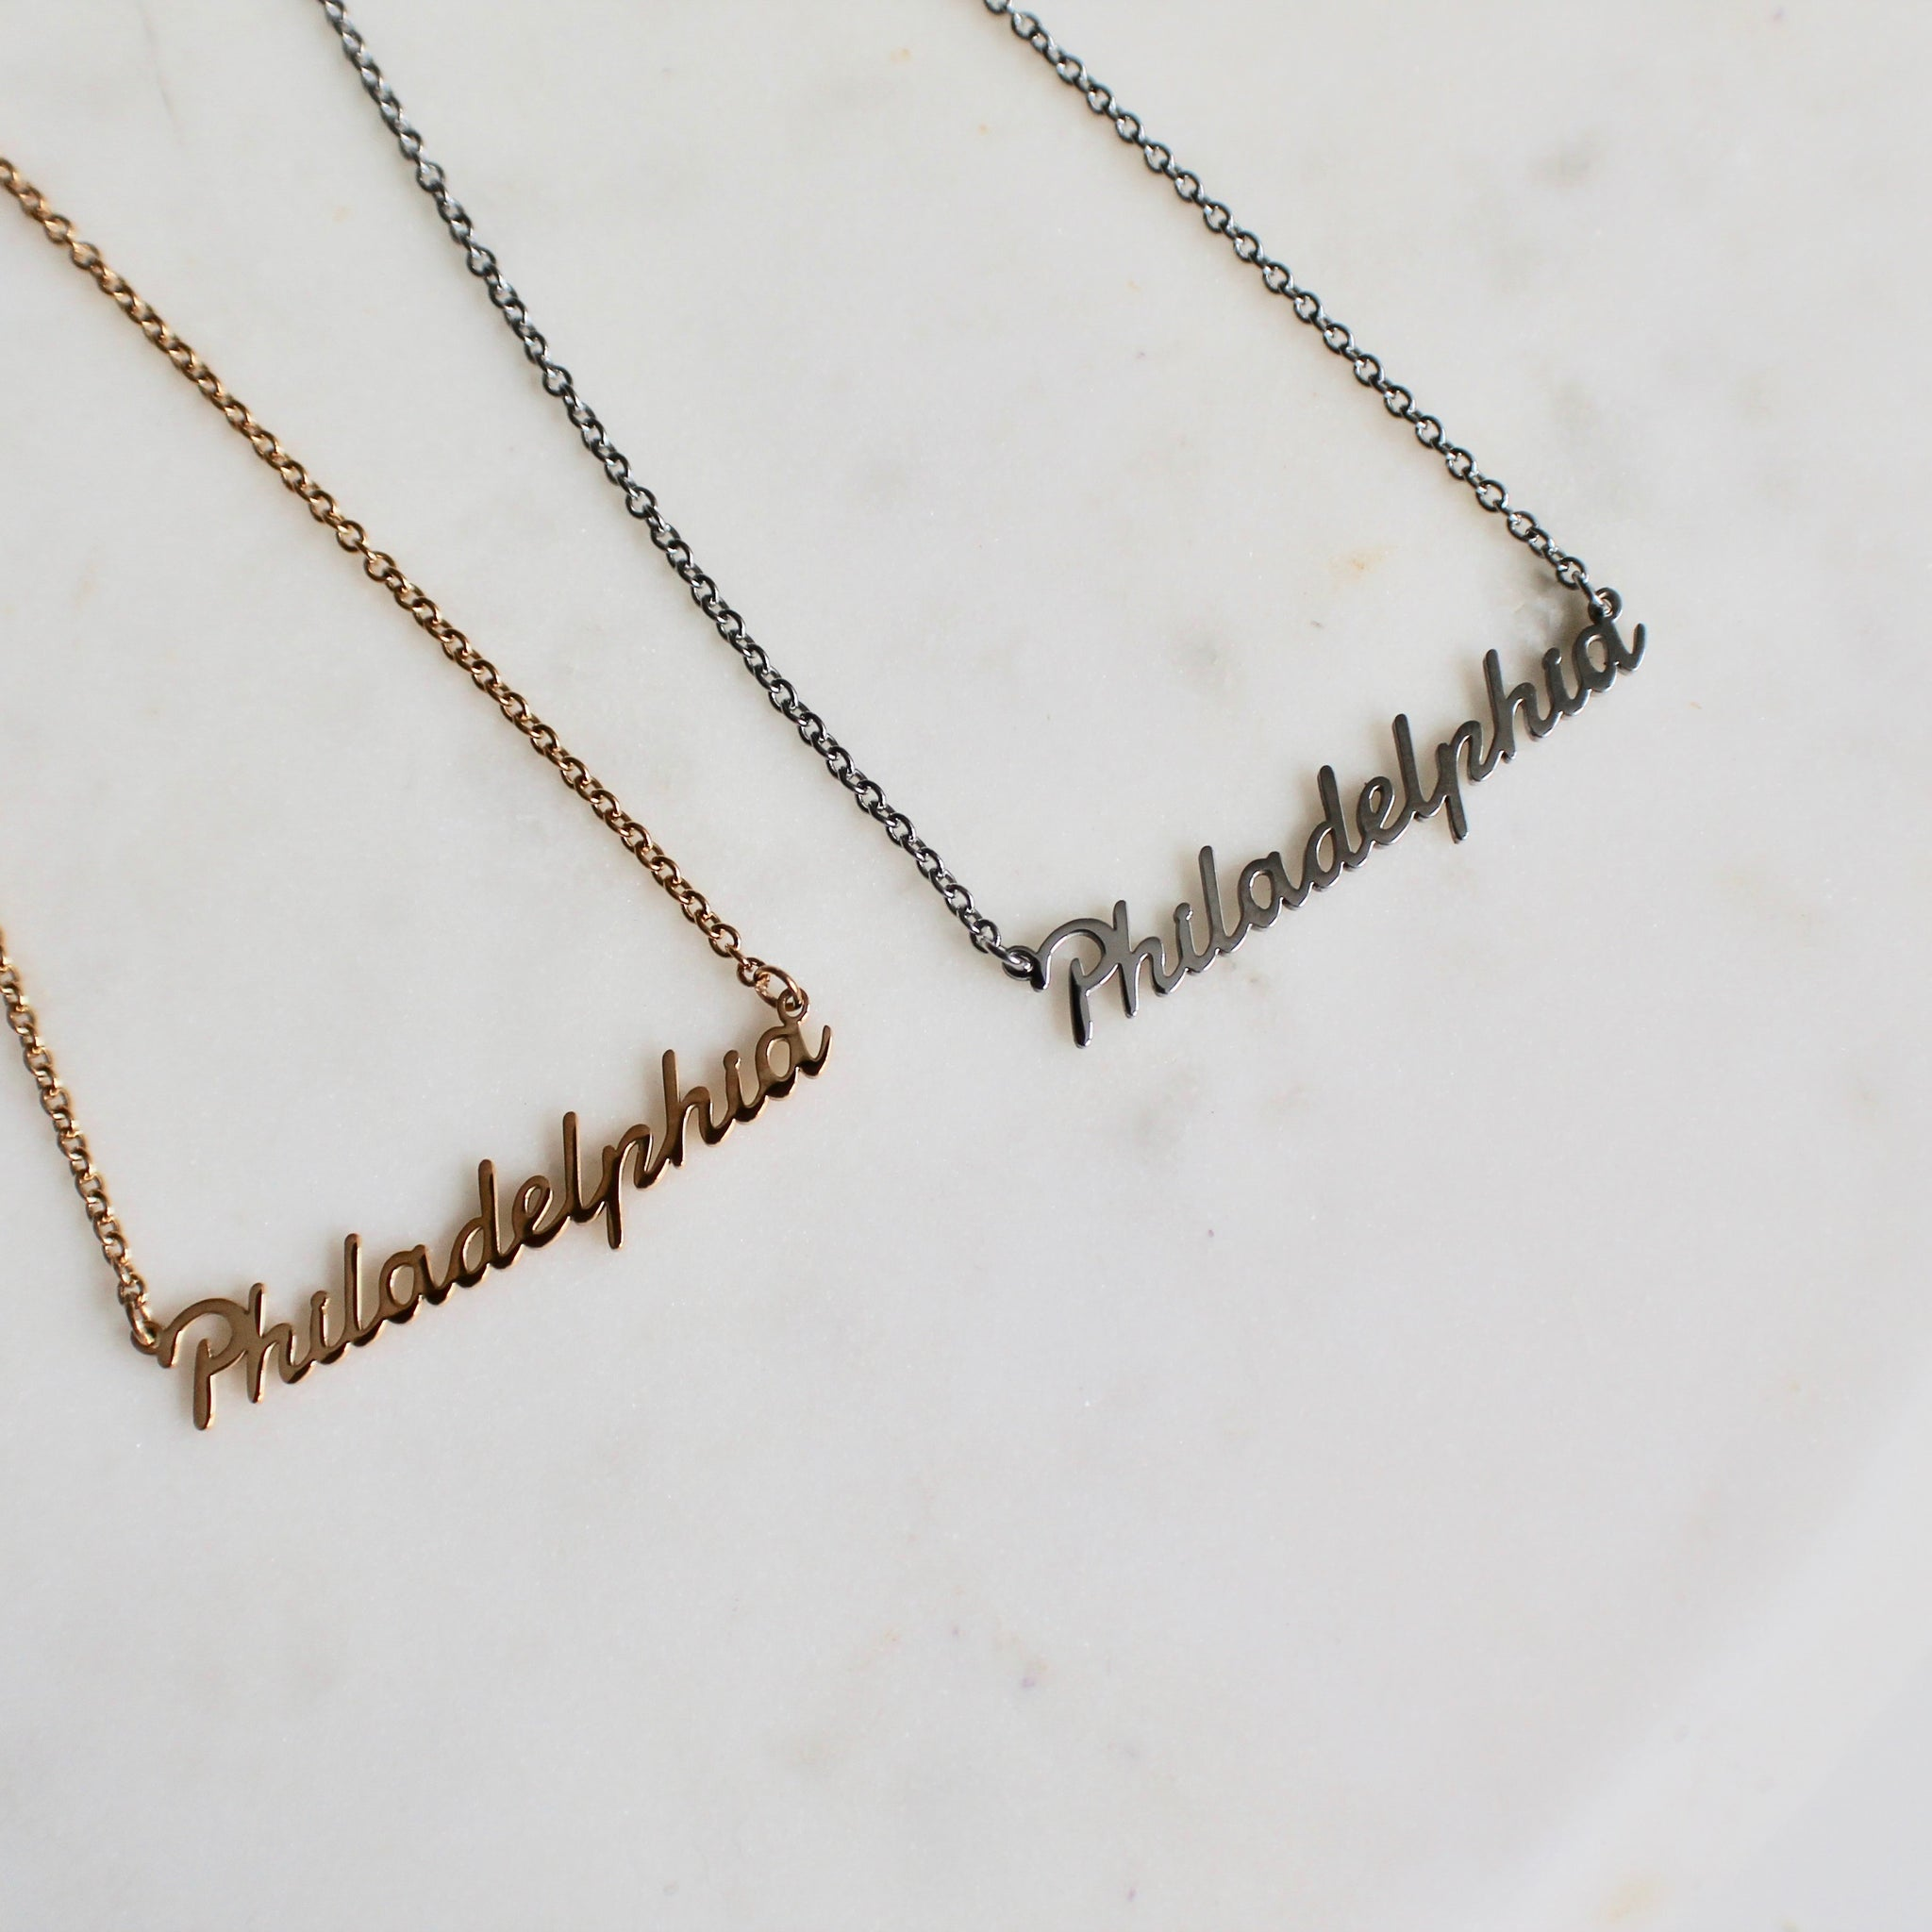 Philadelphia necklace - Lily Lough Jewelry